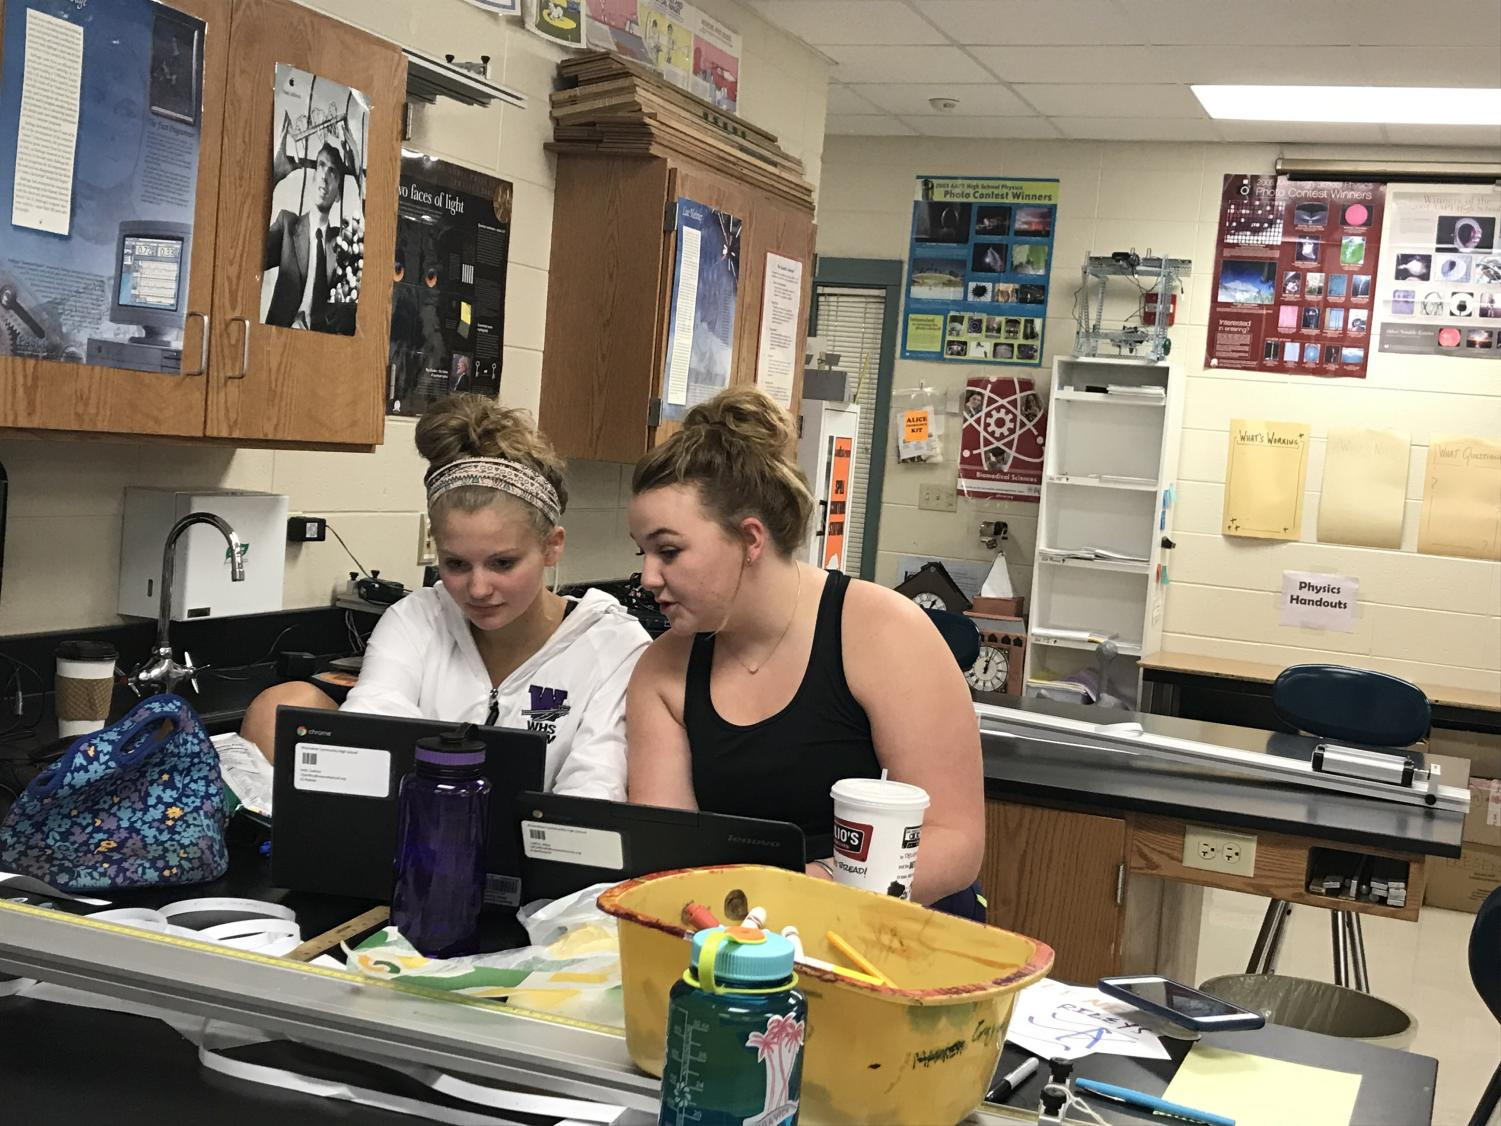 Junior Greta Harris and senior Chloe Fullenkamp work at a Chromebook together. Every student in the school has received their own Chromebook with which they can complete schoolwork, access email, and browse the Internet.